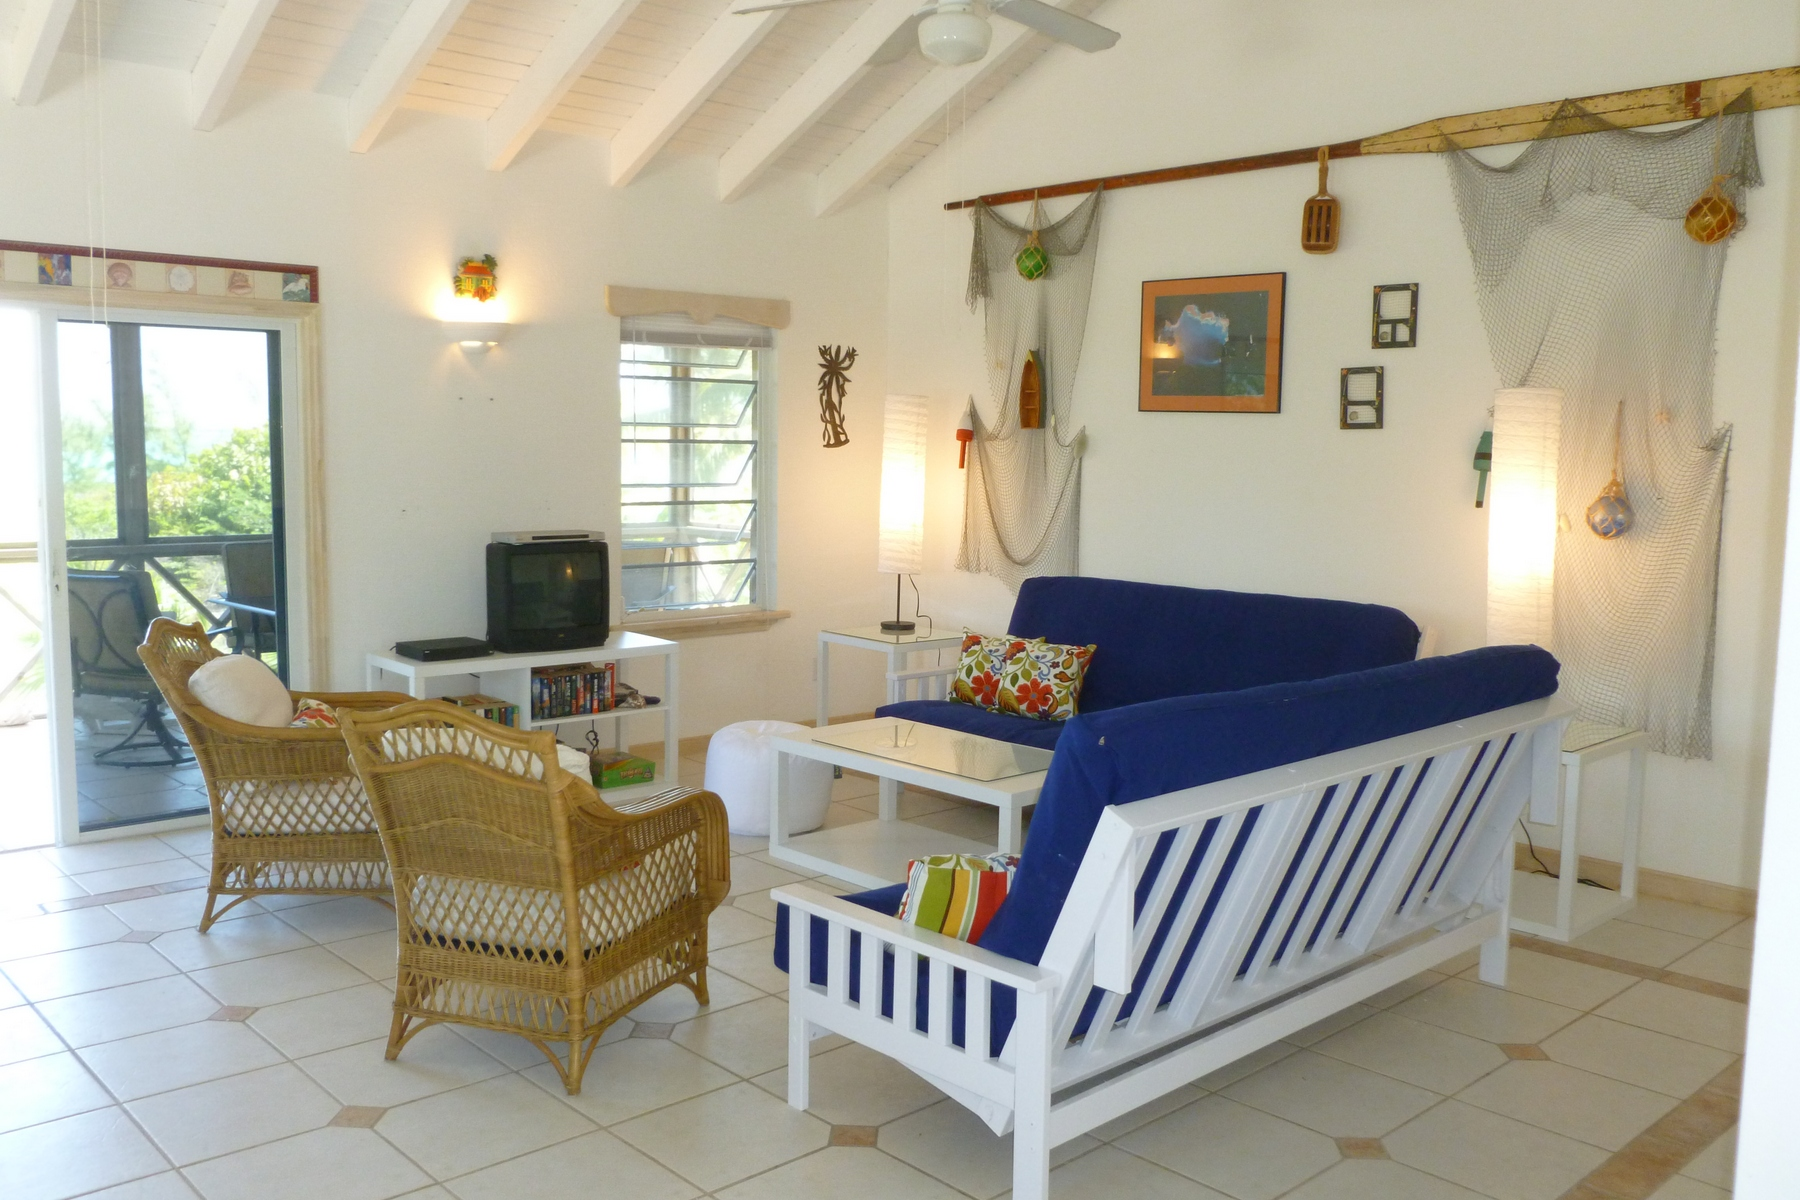 Additional photo for property listing at Whitby Residential Home Oceanview Whitby, Caïque Septentrionale TCI BWI Îles Turques Et Caïques